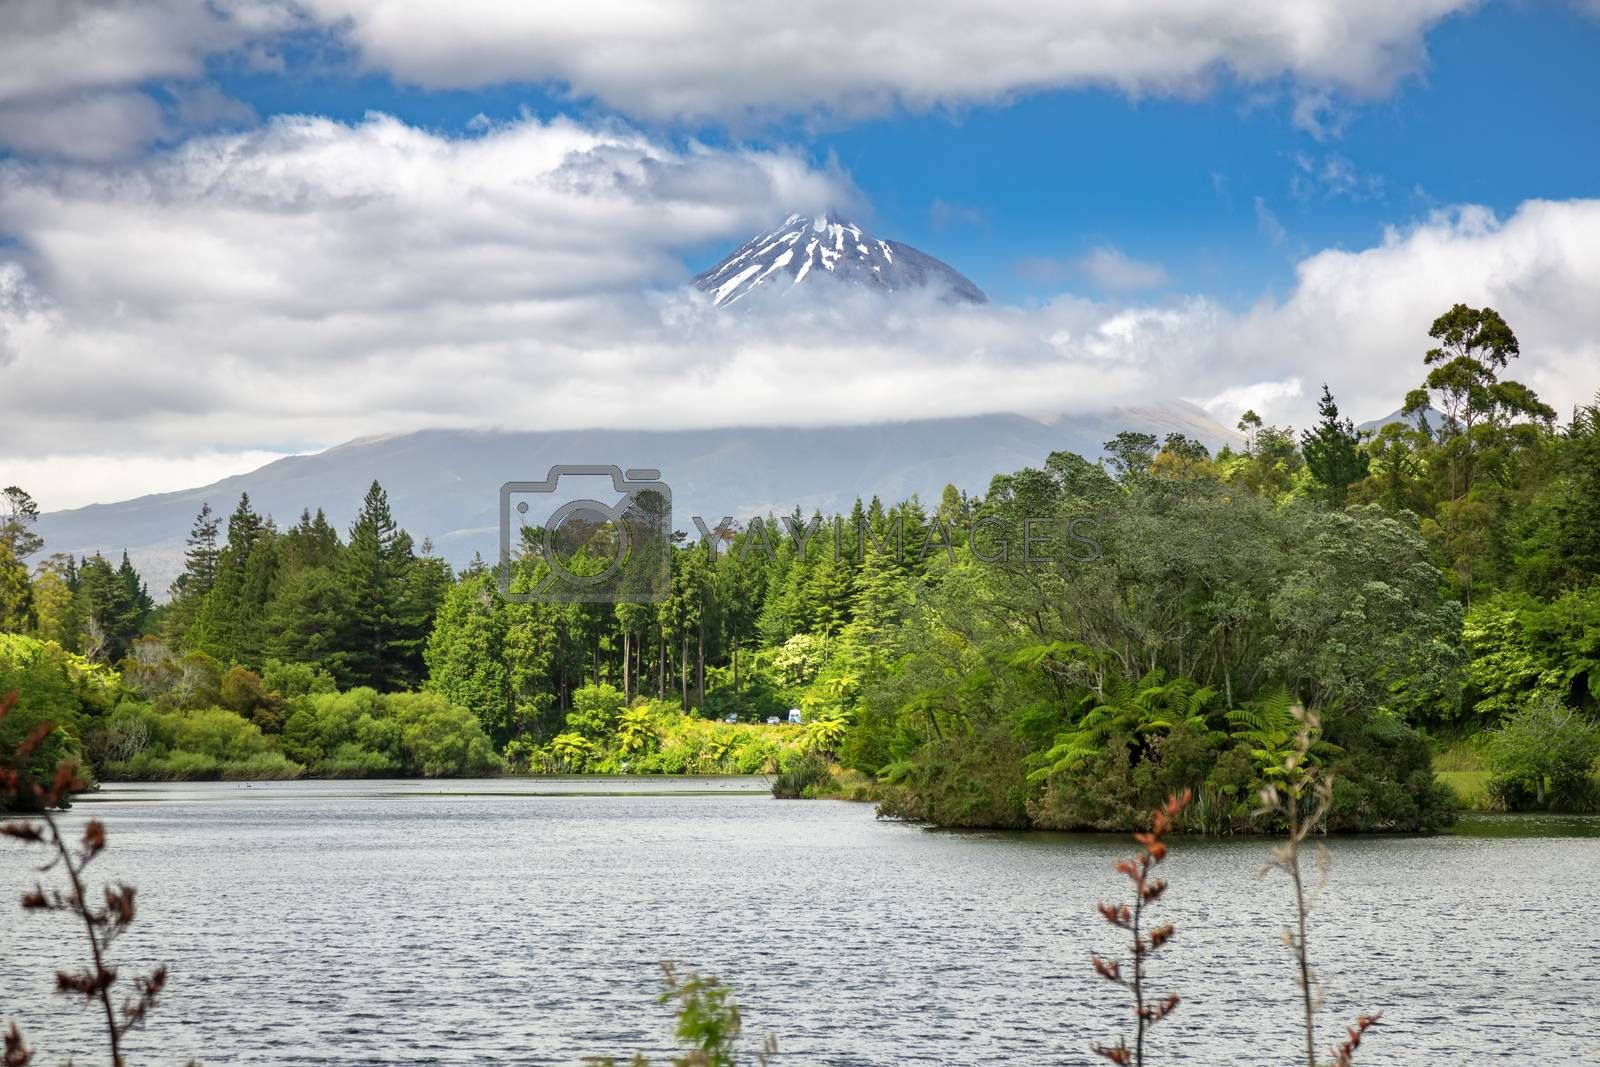 An image of the volcano Taranaki covered in clouds, New Zealand